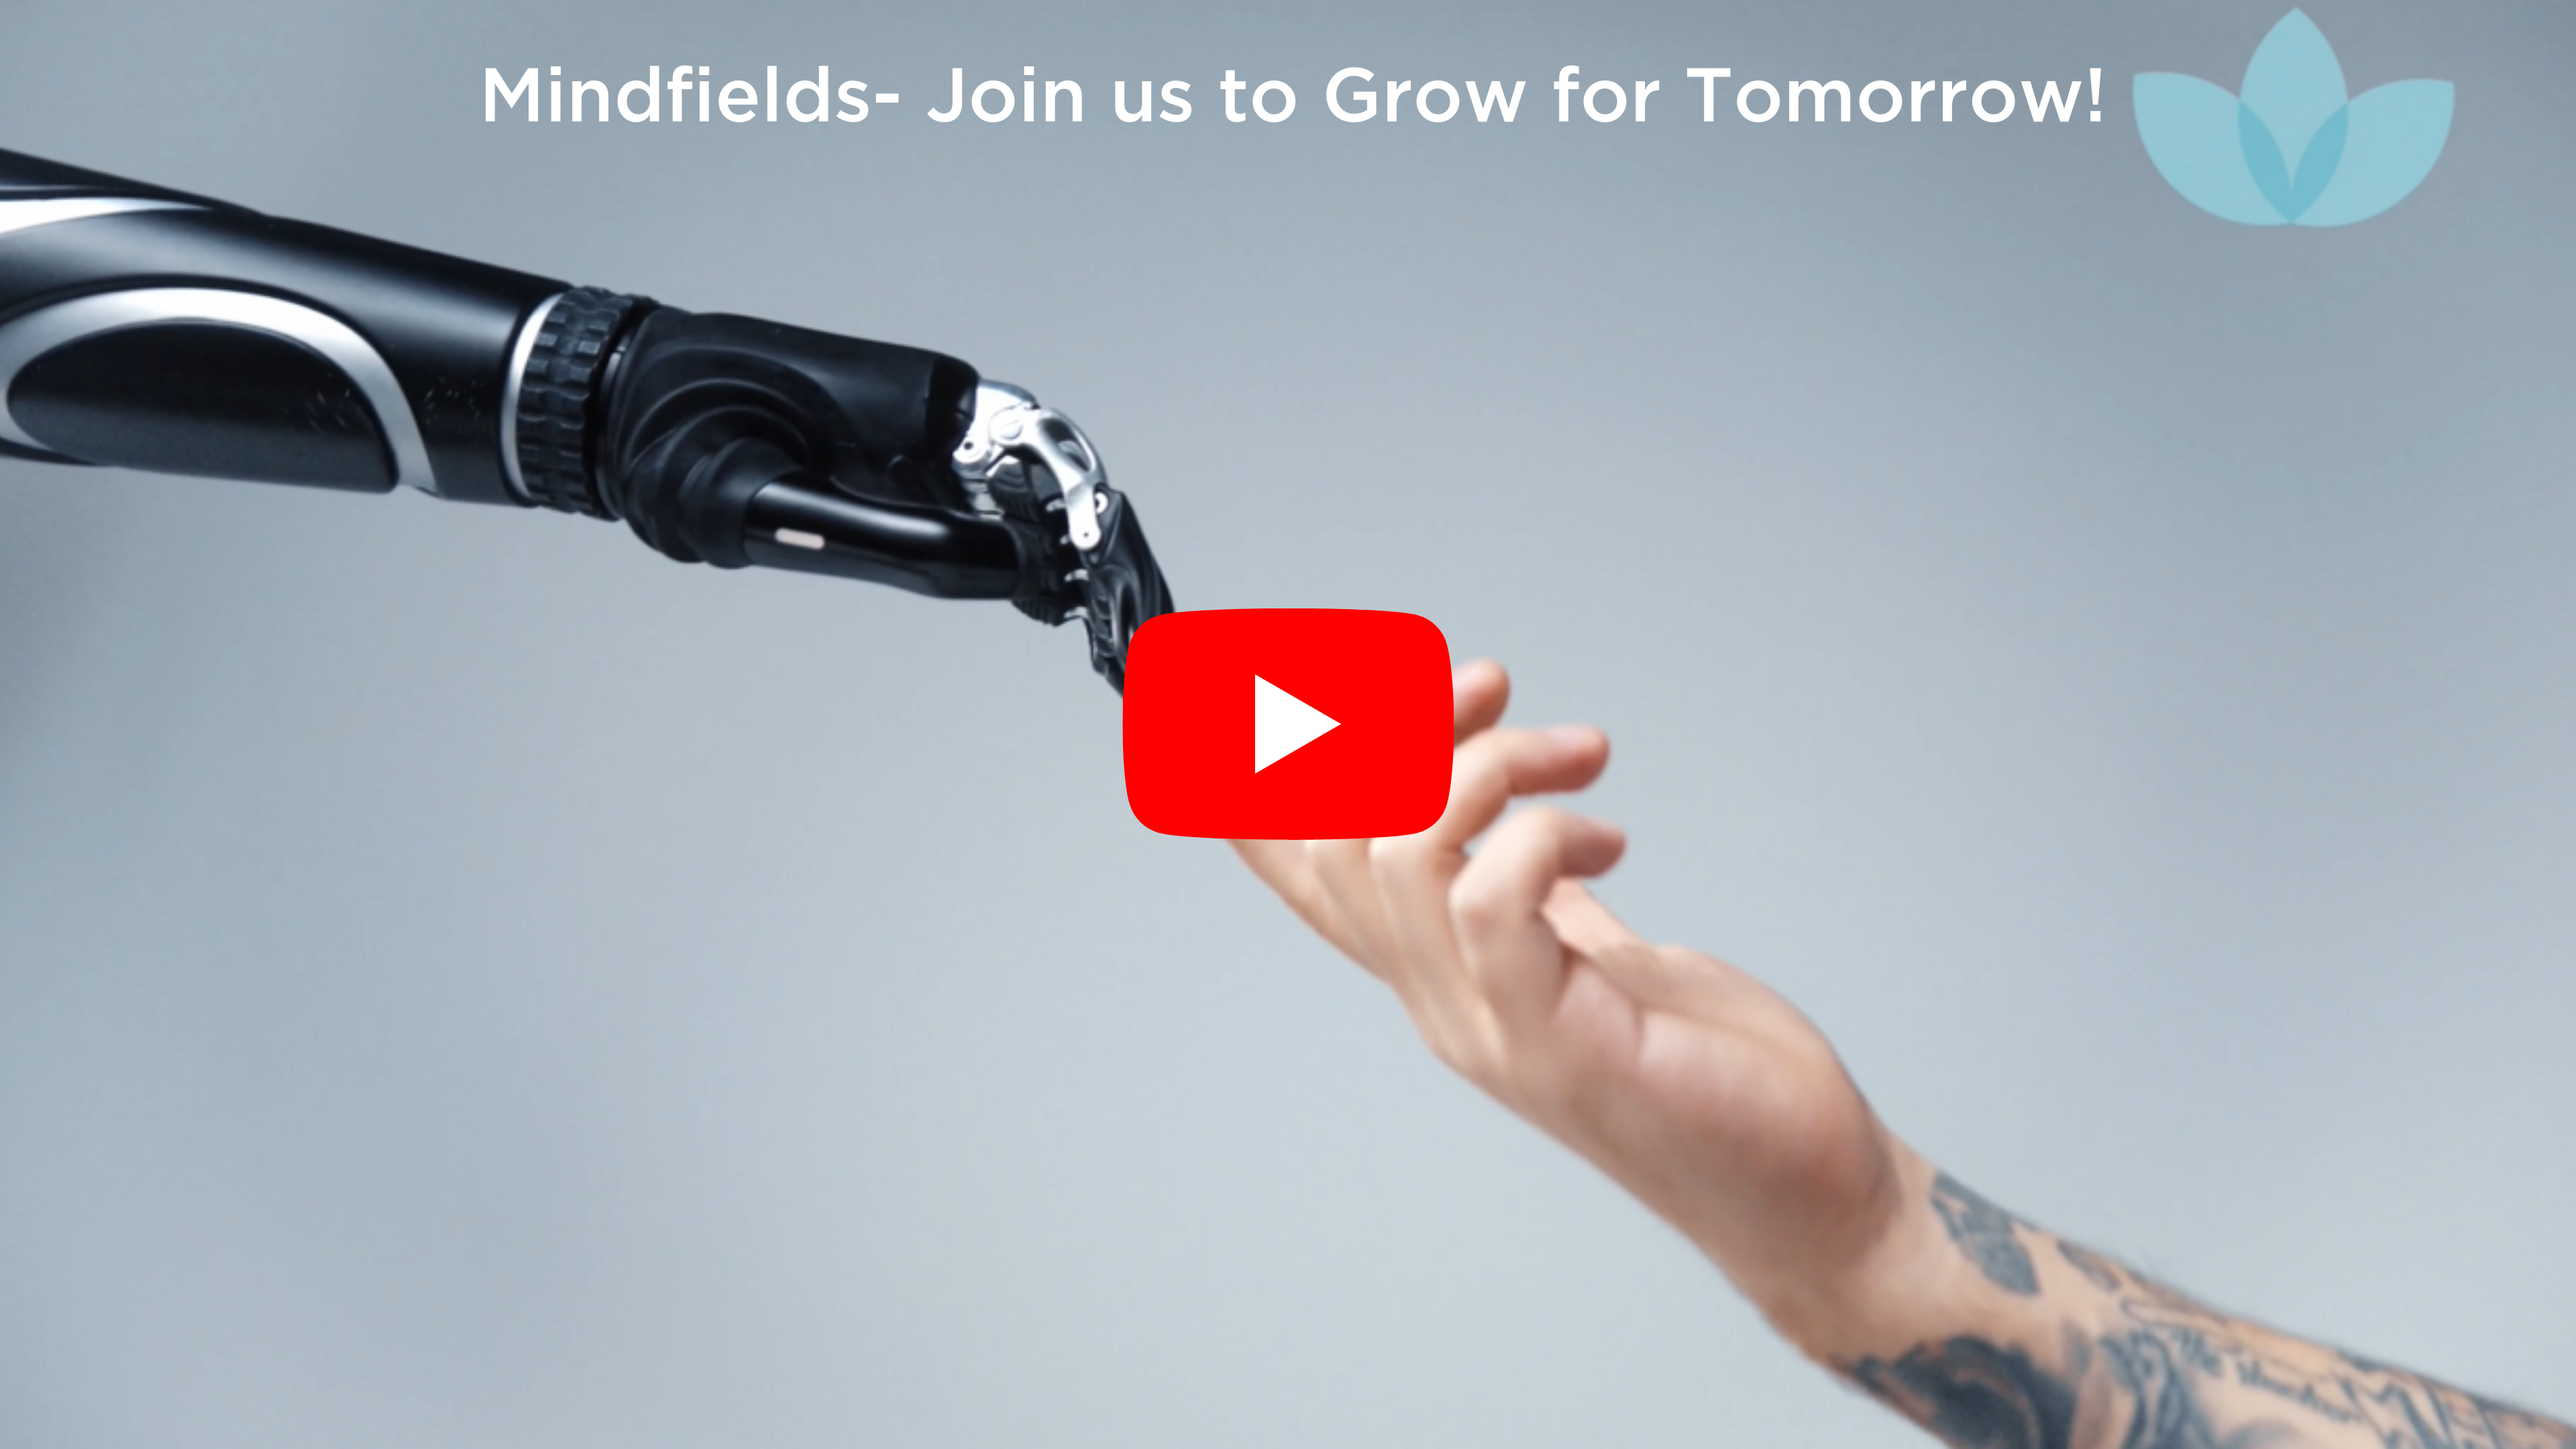 Mindfields - Join Us to Grow for Tomorrow!